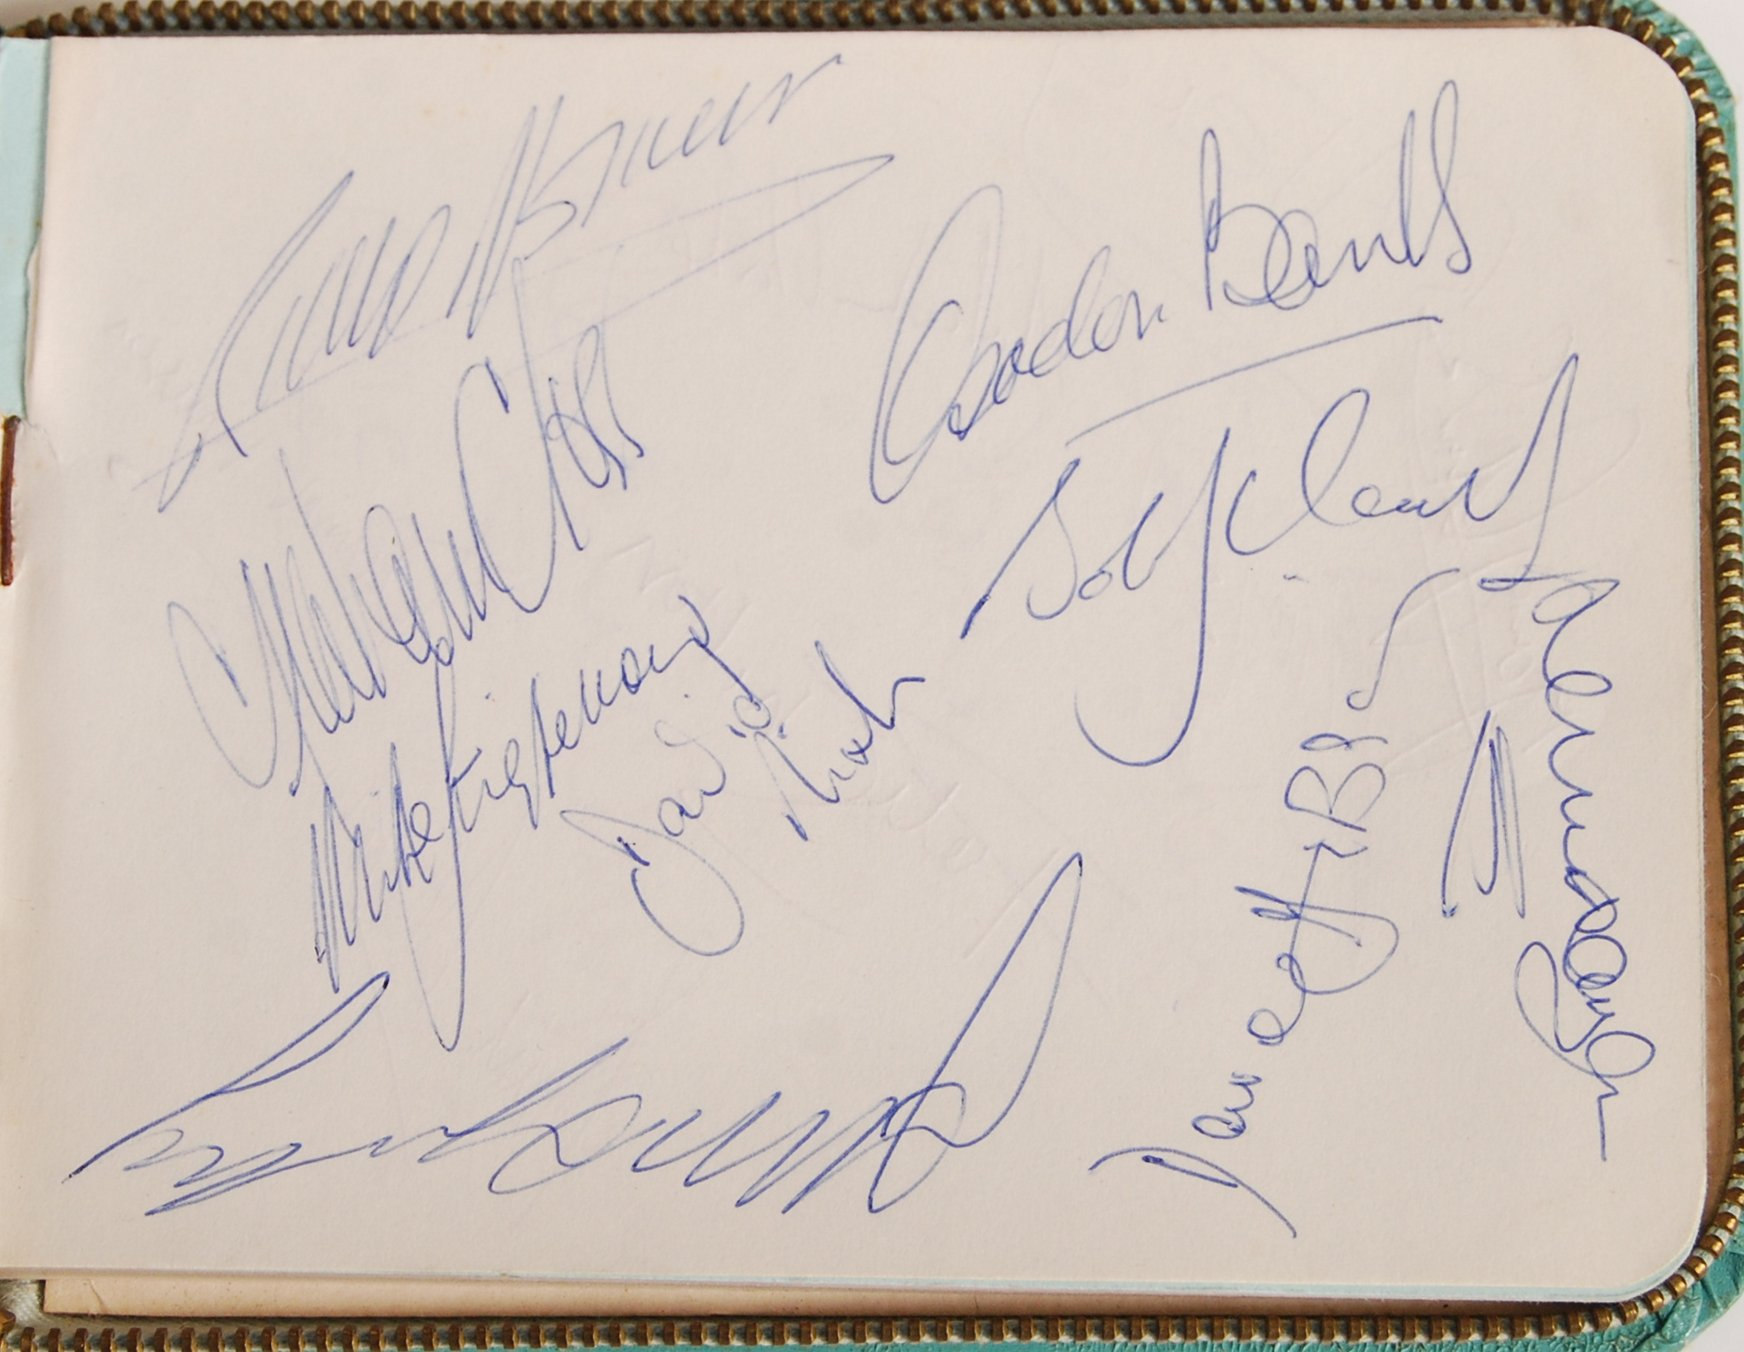 1960'S AUTOGRAPH BOOK - LEICESTER CITY & FOOTBALLE - Image 2 of 5